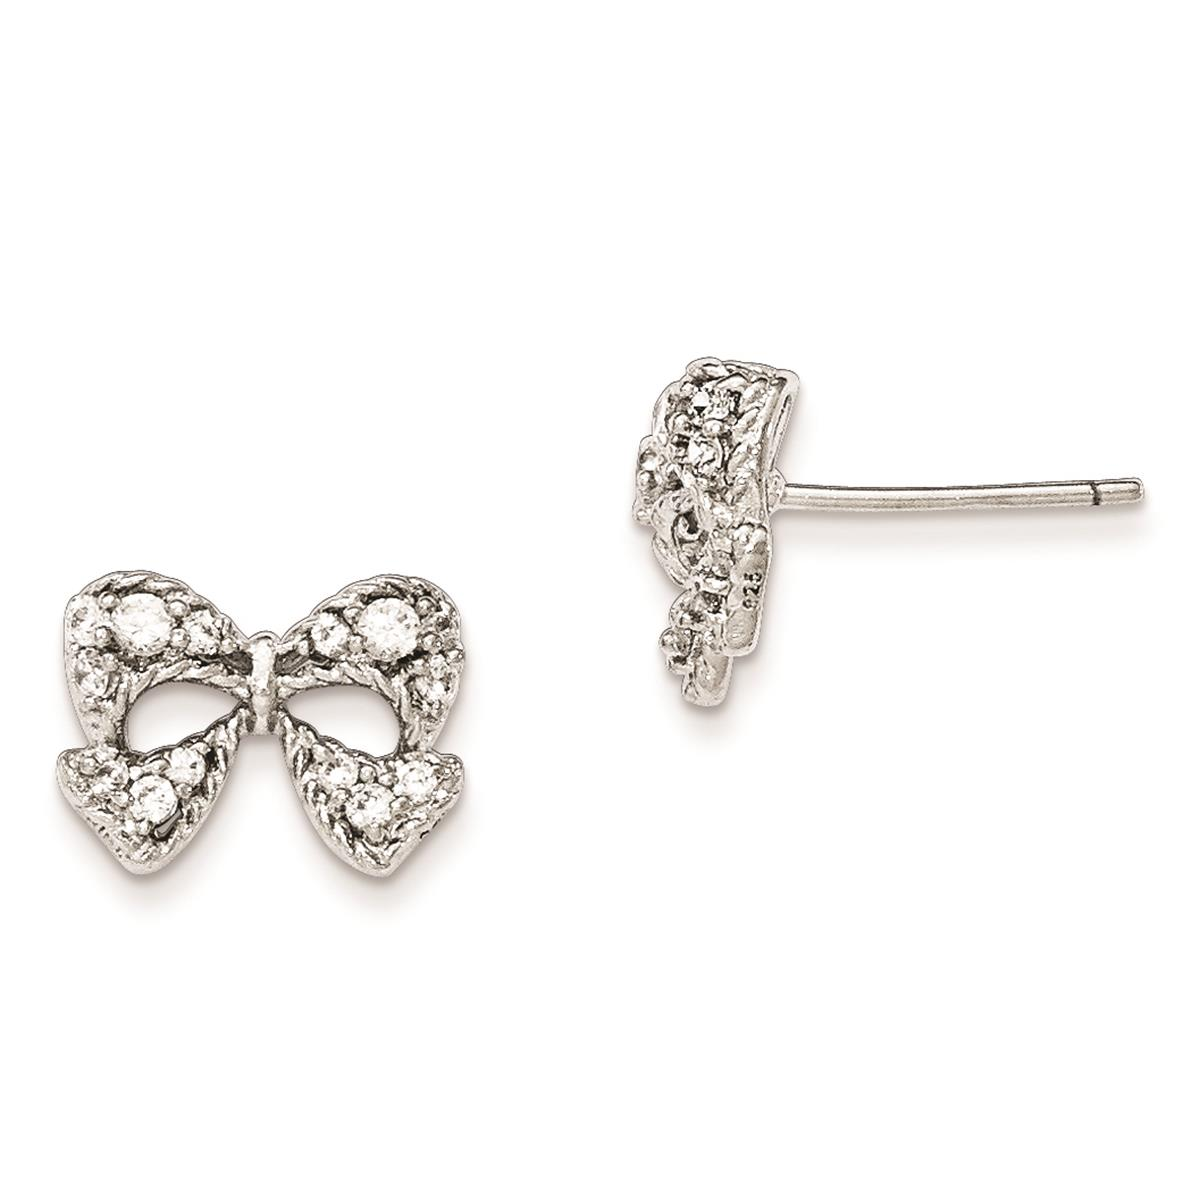 Childrens 925 SS CZ Micro pave Bow Post Kids Earrings 13mm x 10mm